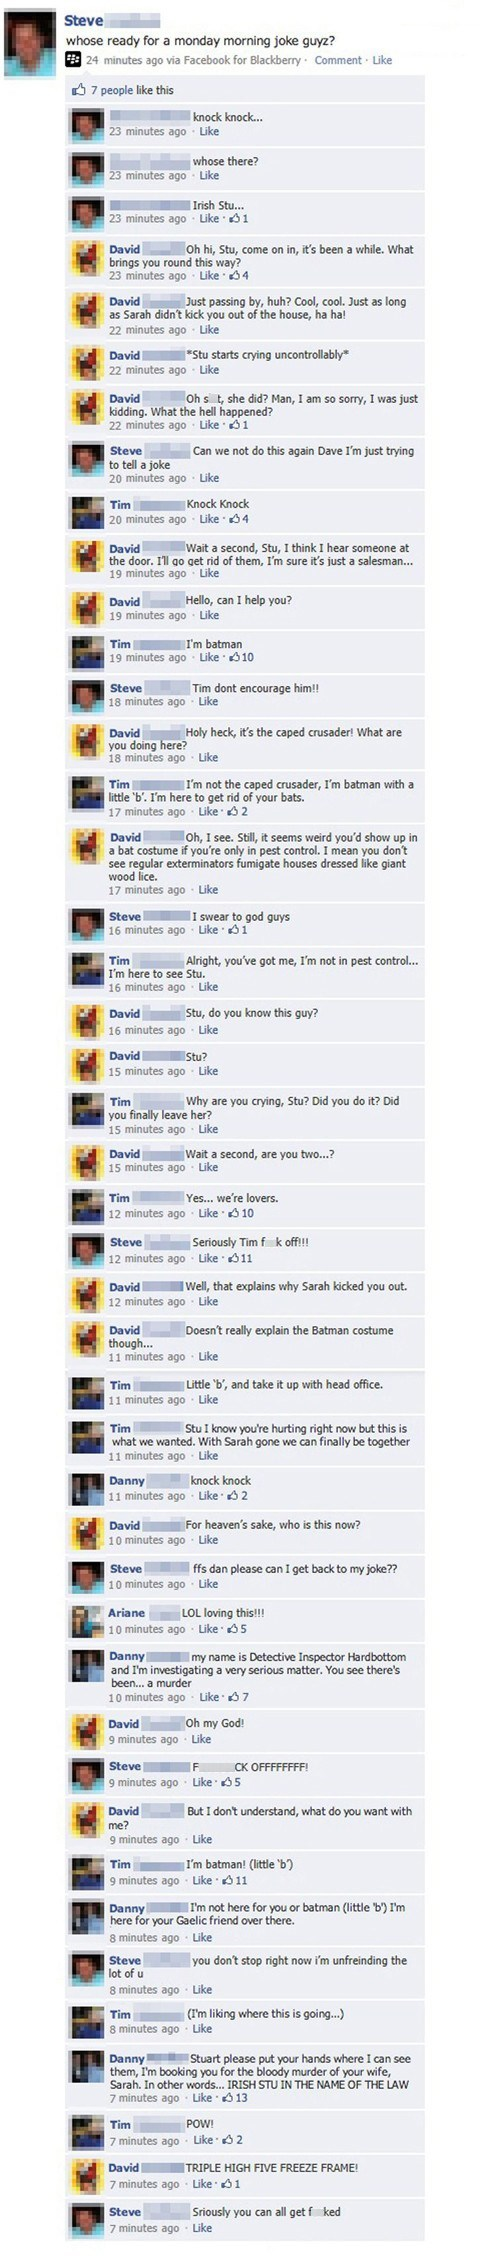 jokes trolling knock knock joke failbook - 7579798272